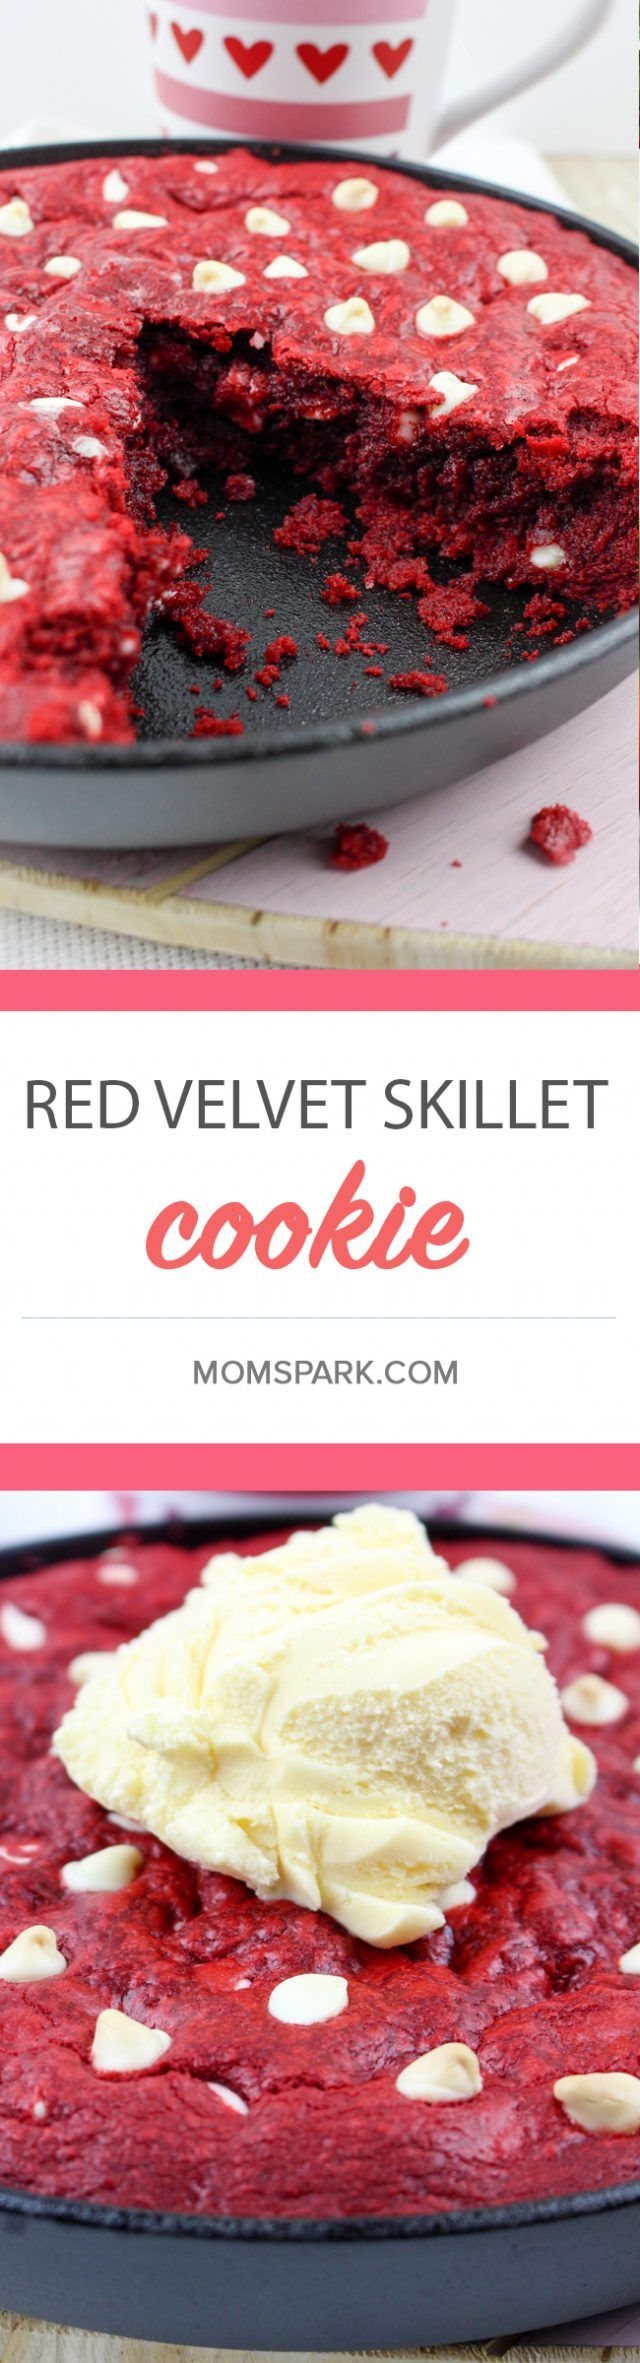 Red Velvet Skillet Dessert Cookie Recipe - What is it about red velvet that makes it so very delicious? All I know is that I want red velvet with every dessert for Valentine's Day. I'm also cool with it having another sweet counterpart, like white chocolate chips. Oh, and why not put all of that into a cookie skillet, too?…